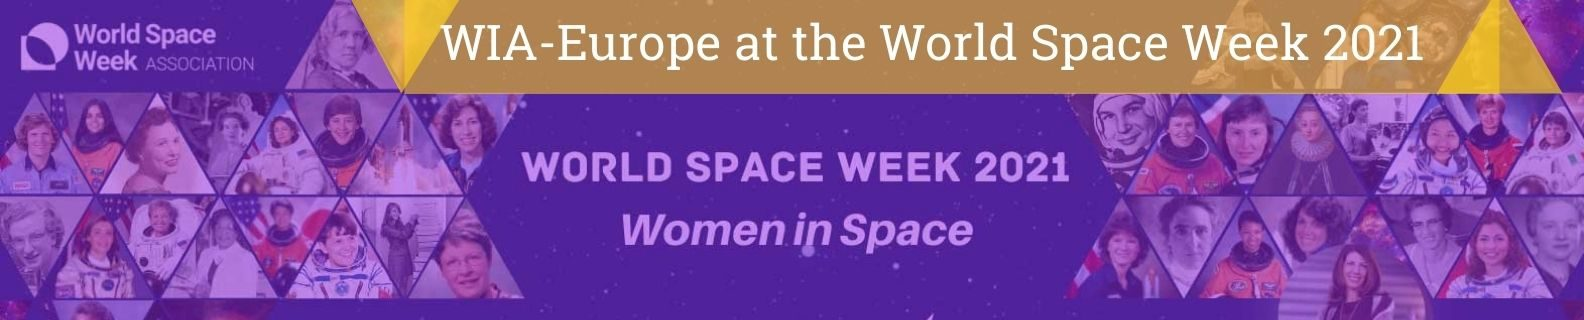 WIA-Europe White Paper Panels at the World Space Week 2021